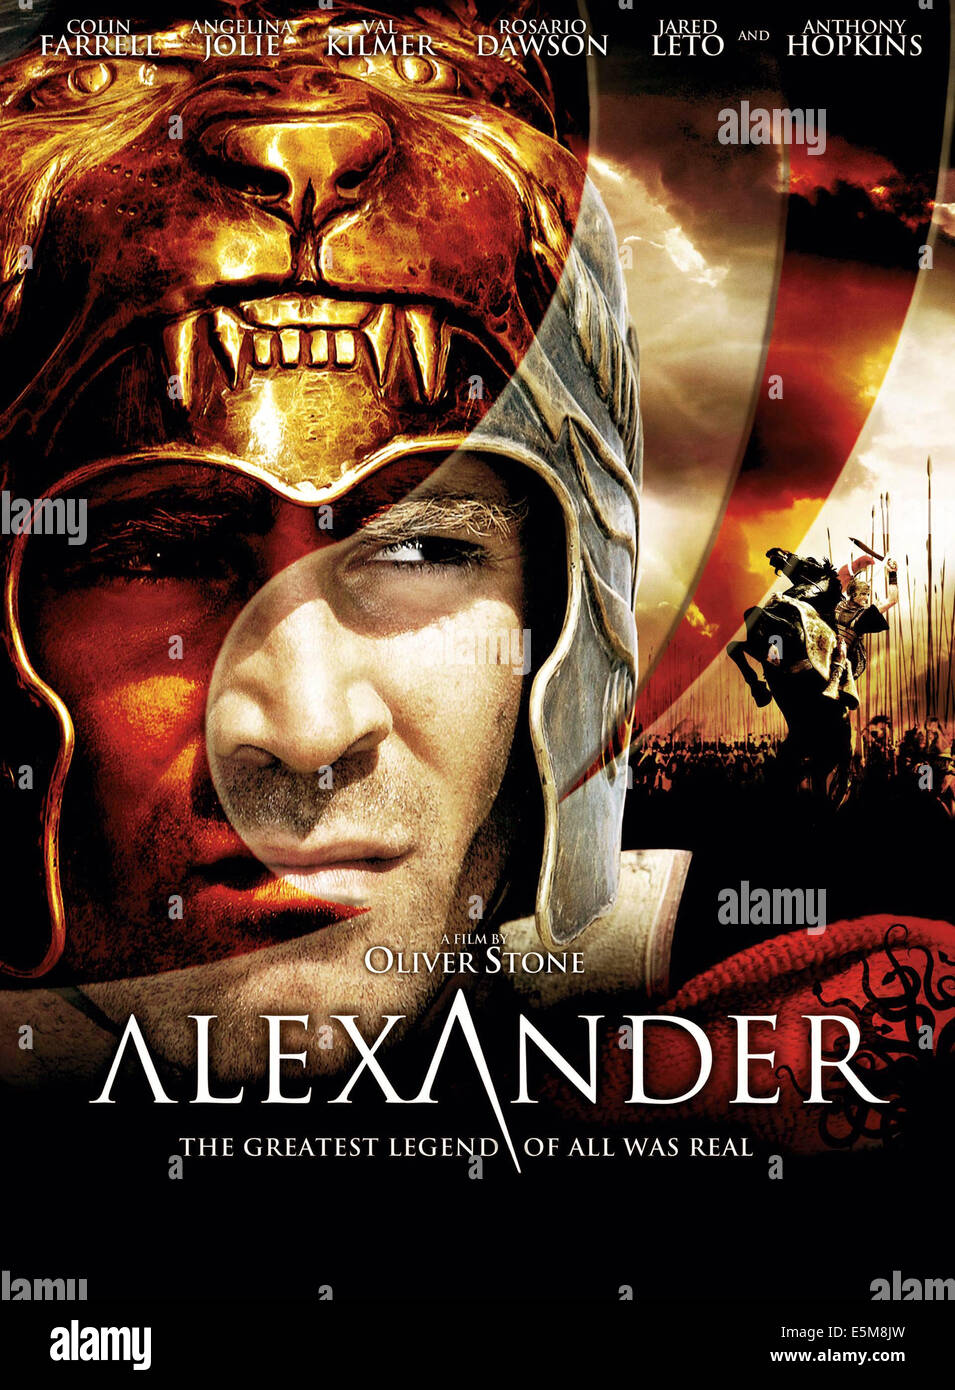 ALEXANDER, Colin Farrell, 2004, (c) Warner Brothers/courtesy Everett Collection - Stock Image